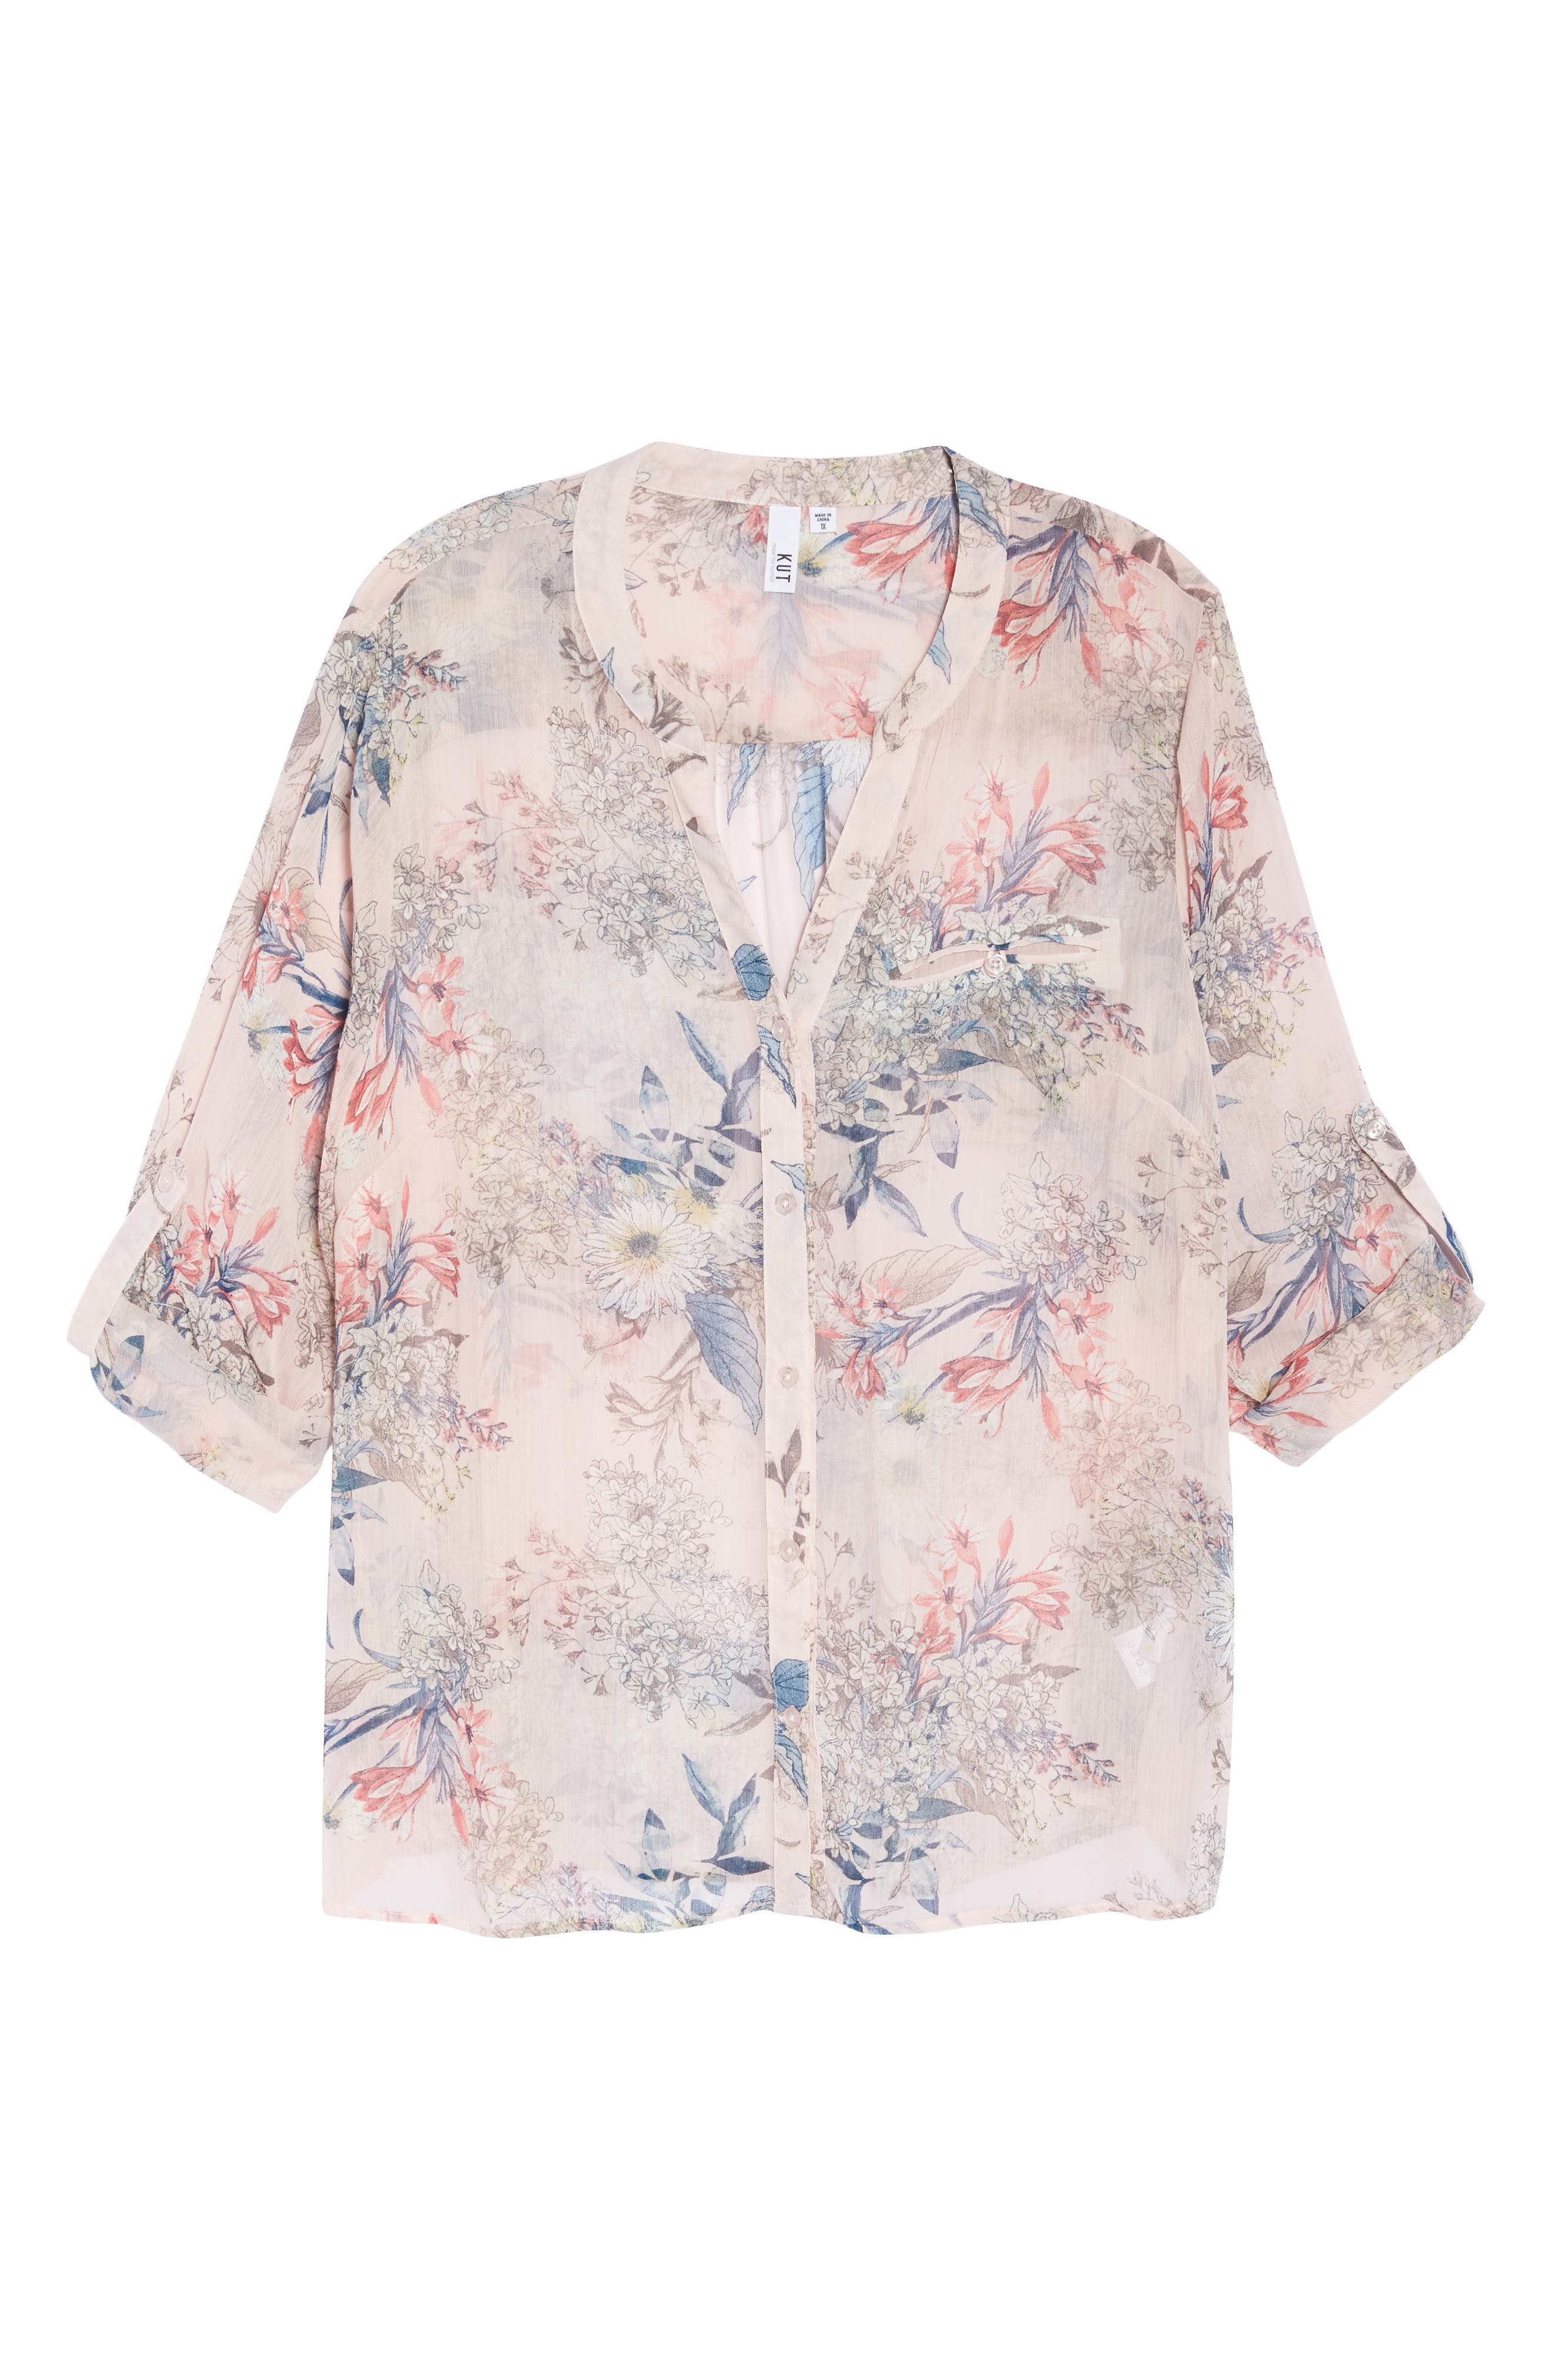 Jasmine Floral Roll Sleeve Top,                             Alternate thumbnail 7, color,                             PALE PINK